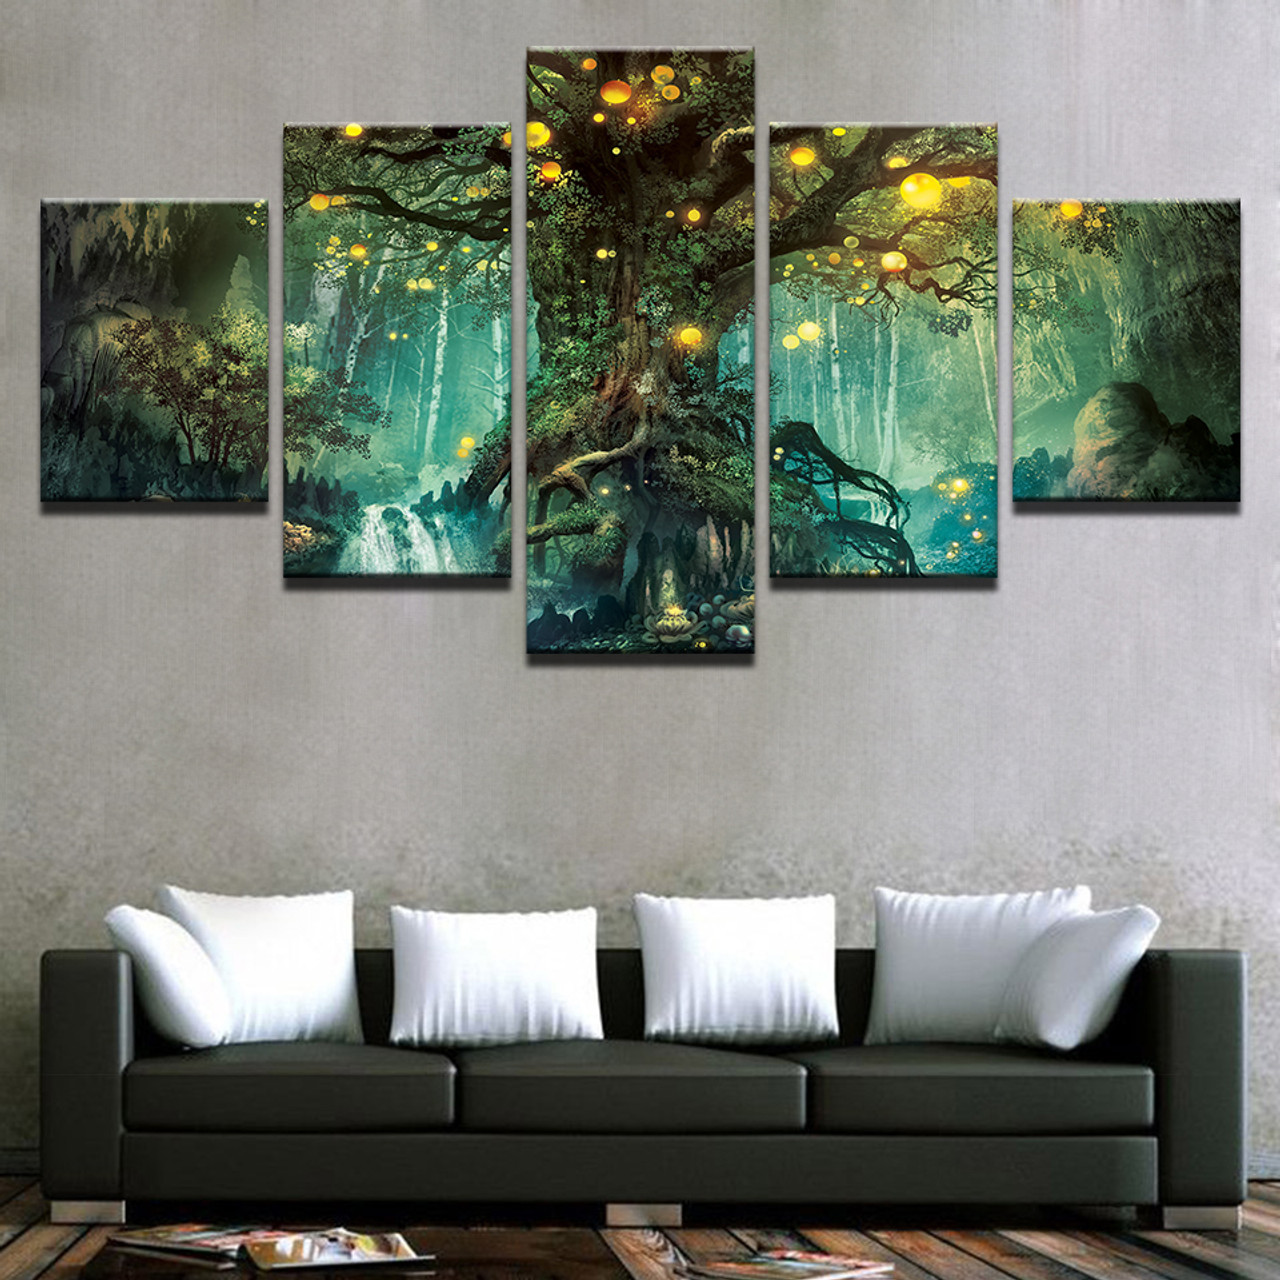 Canvas Wall Art Pictures Frames Living Room 5 Pieces Enchanted Tree Scenery  Paintings Home Decor HD Printed Magic Forest Posters - OnshopDeals.Com